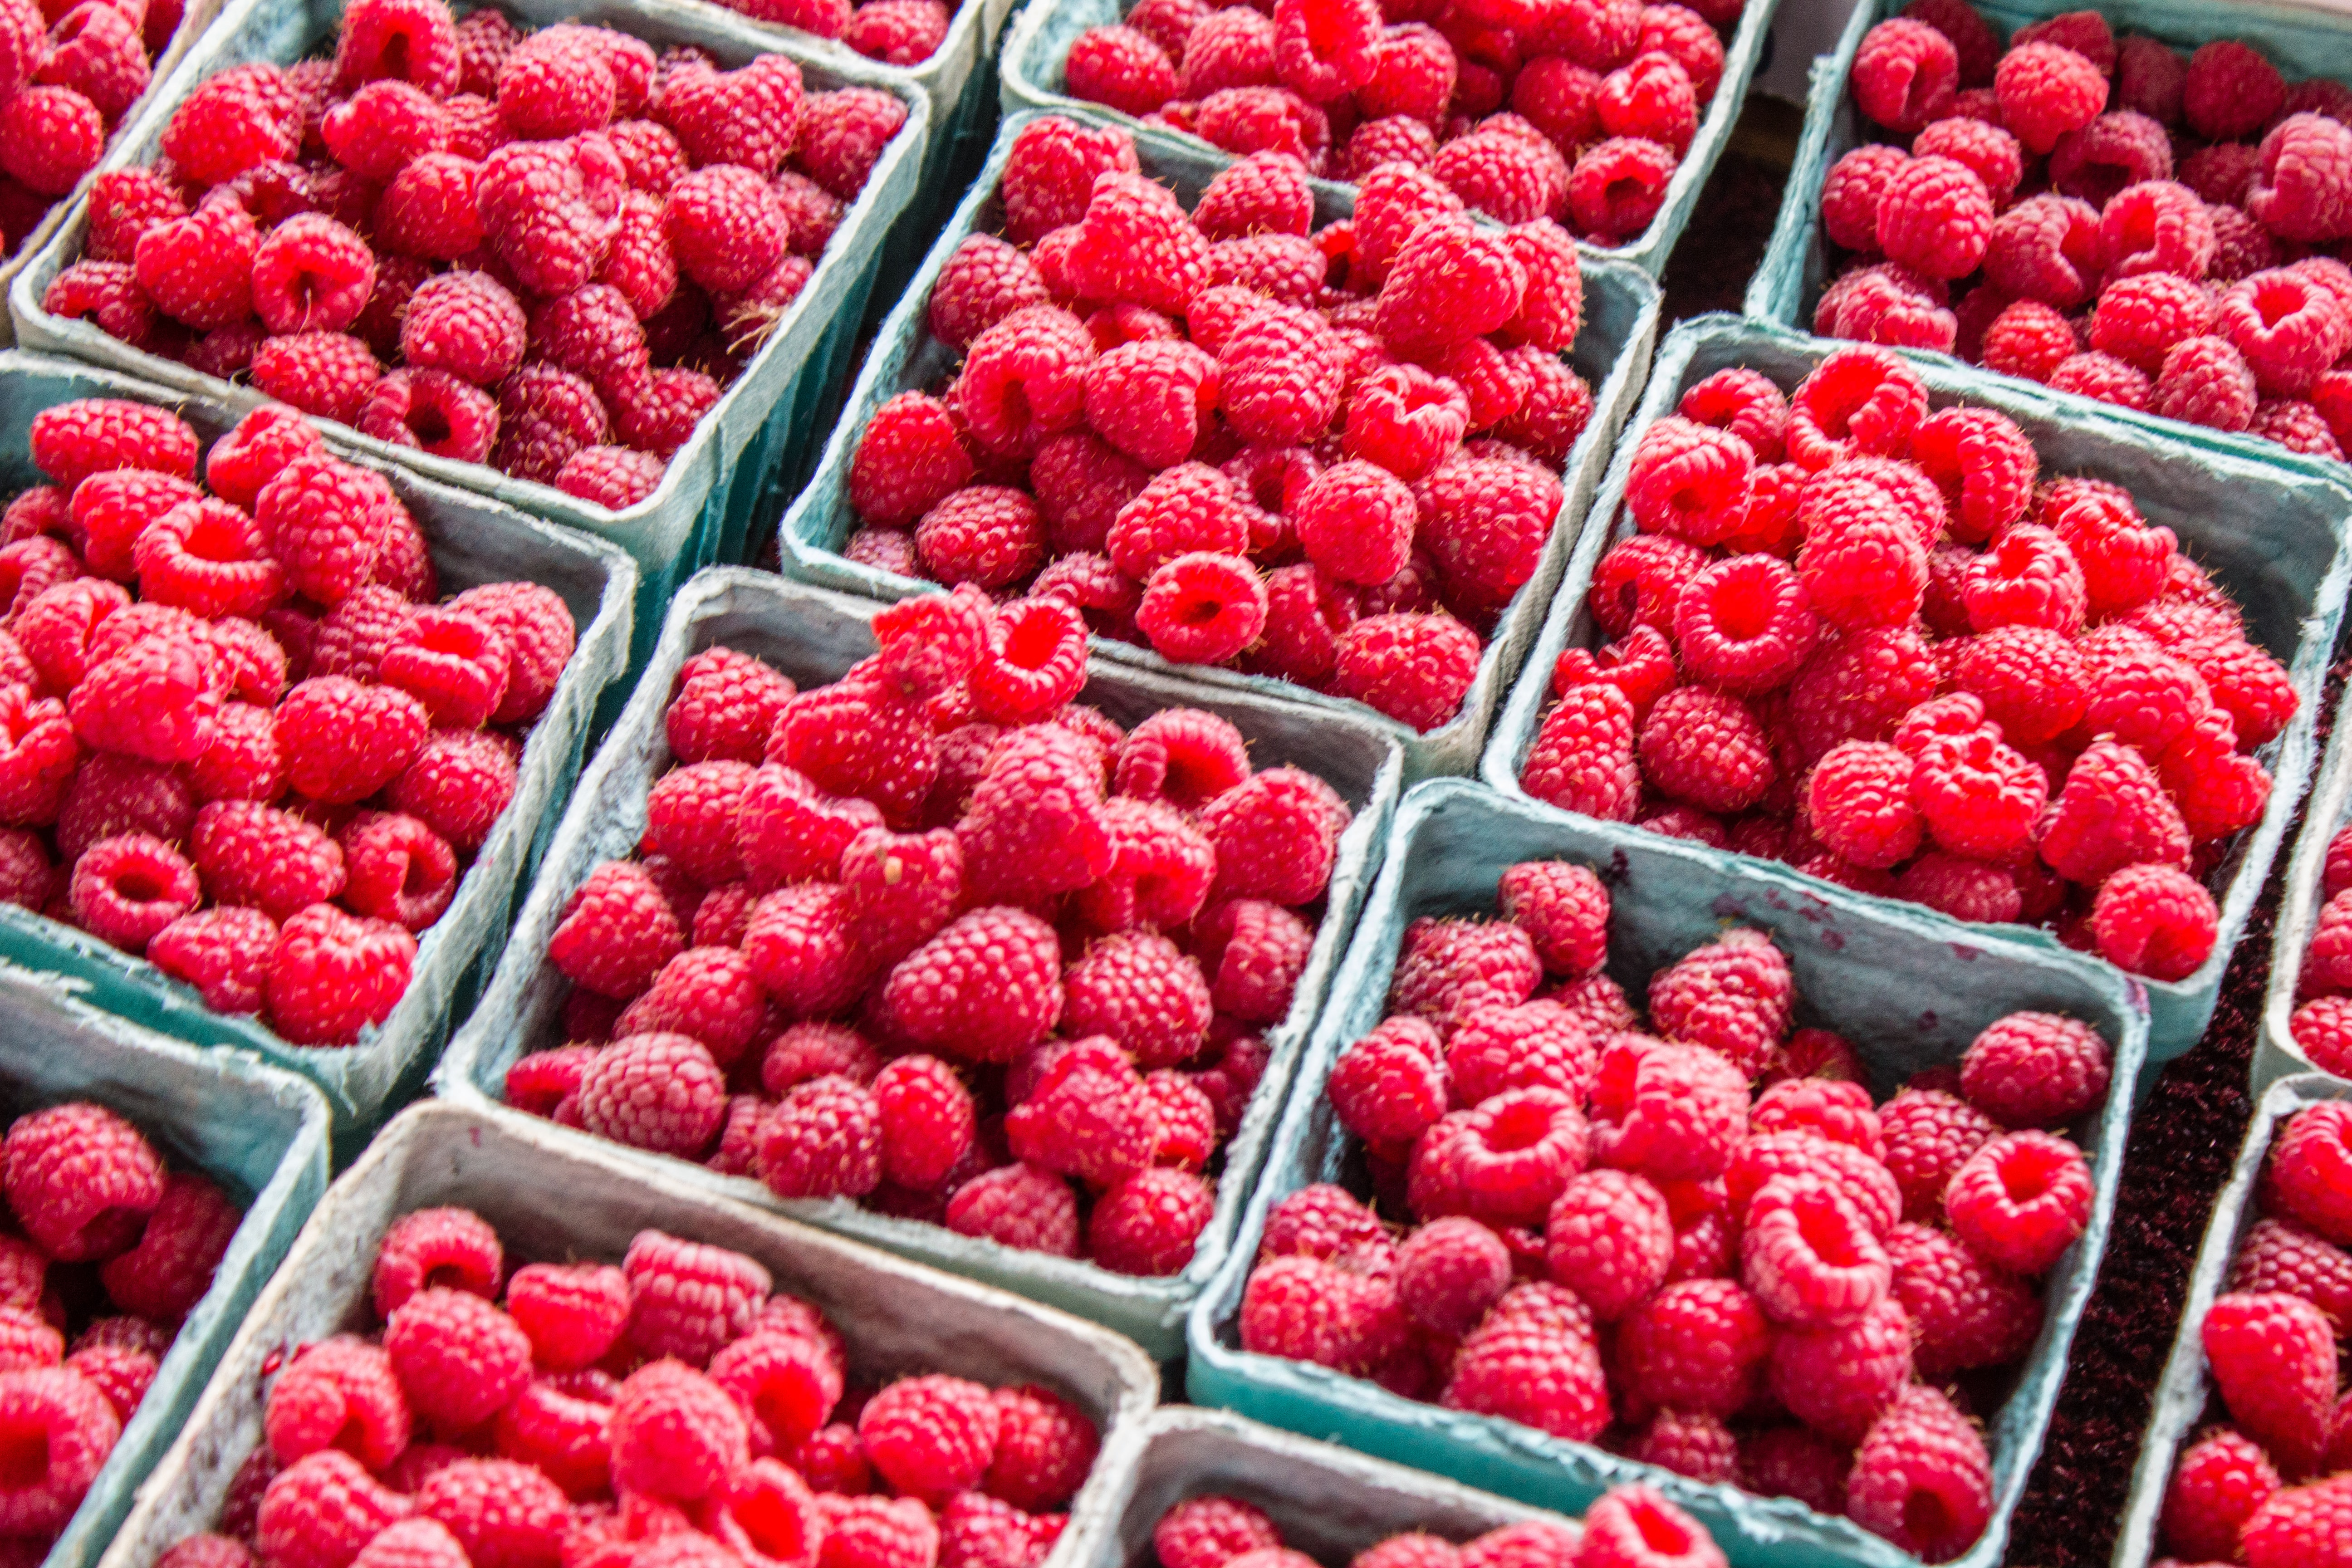 three rows of punnets of raspberries lines up to illustrate what's in season in the UK in July